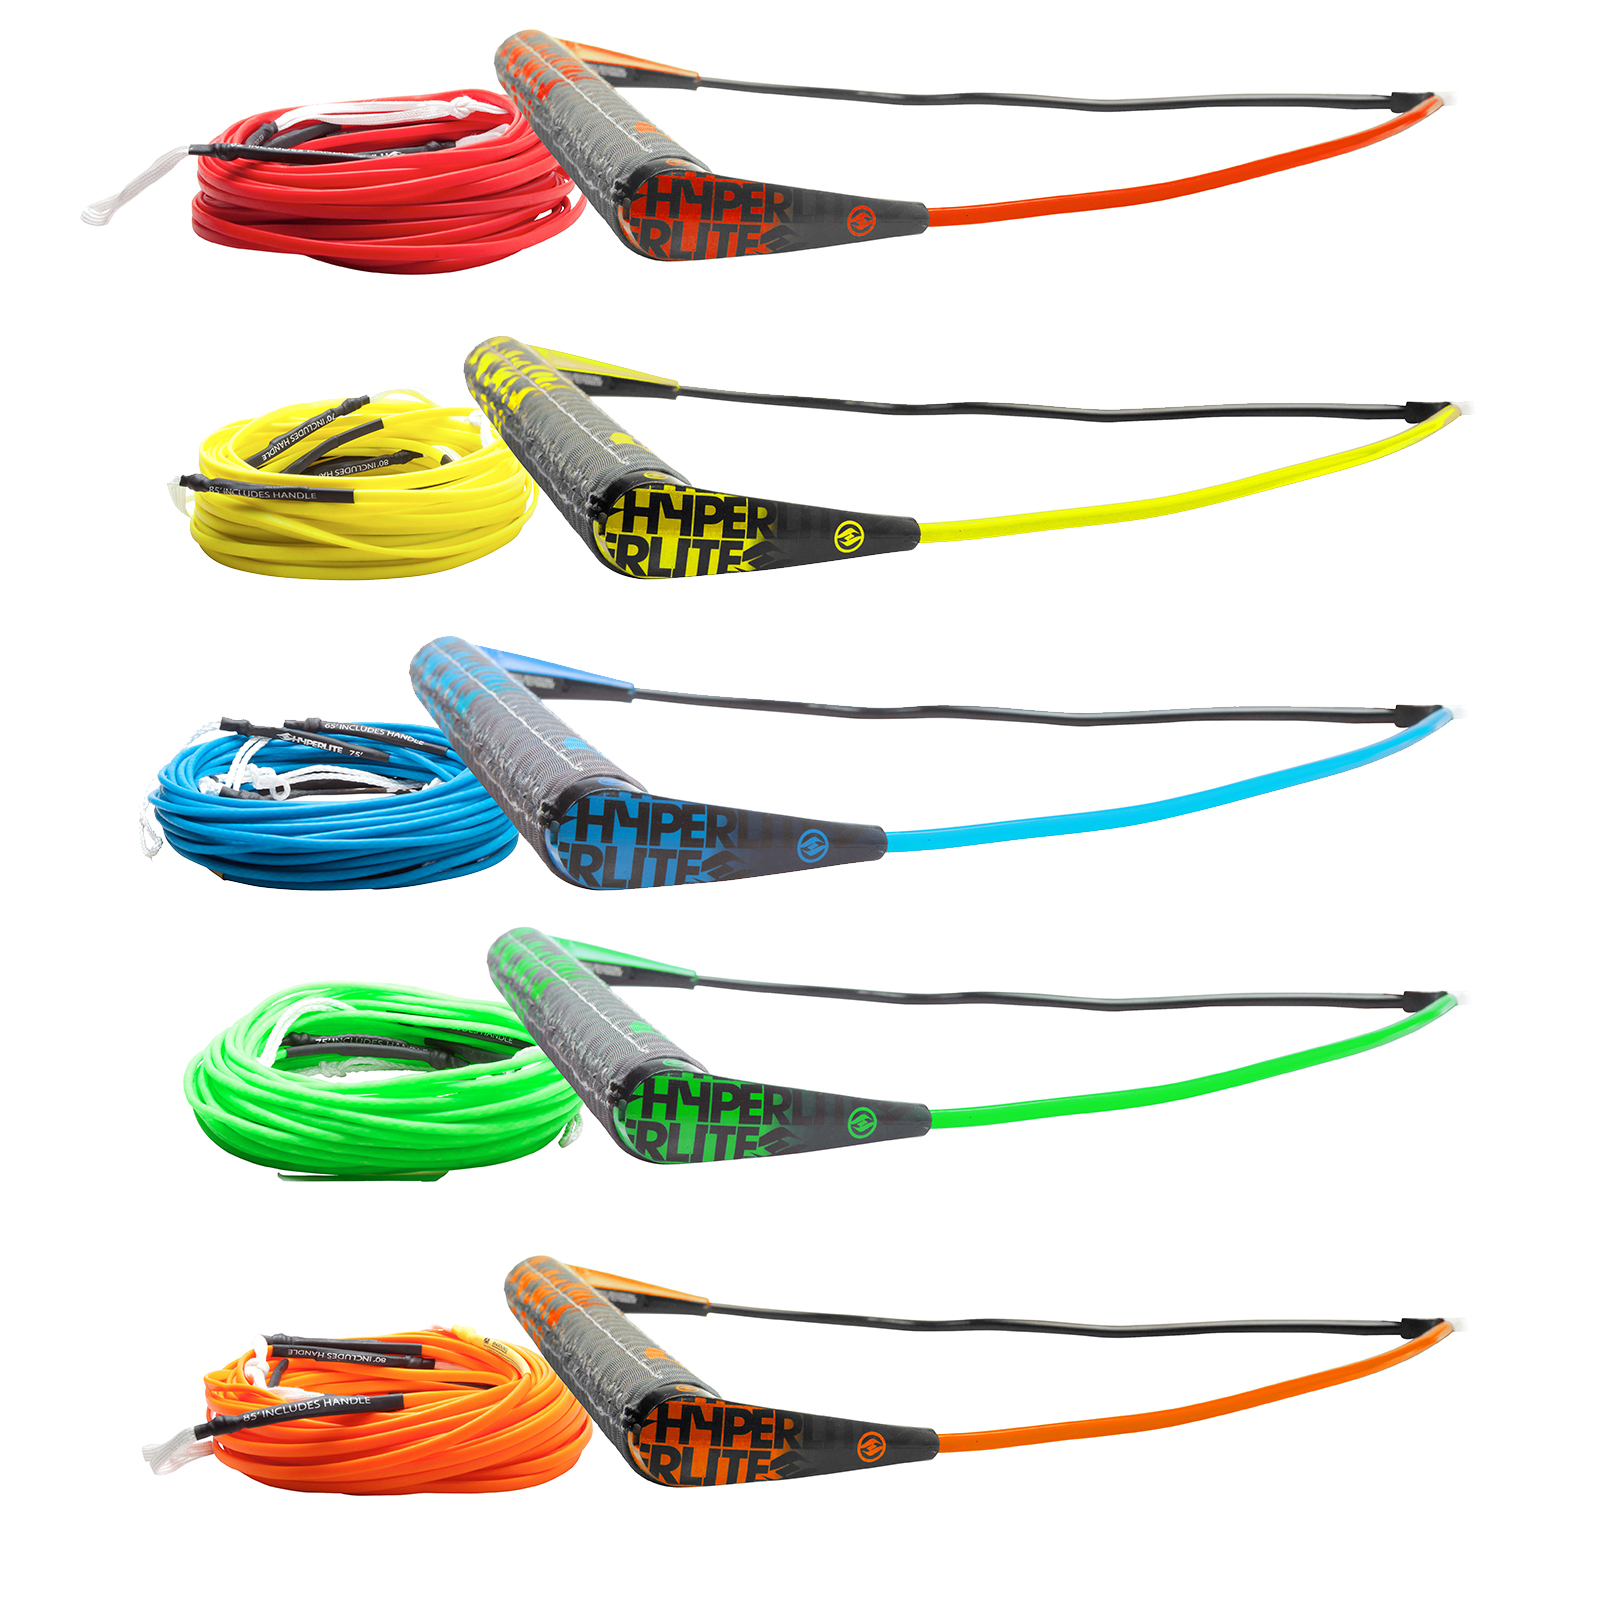 TEAM HANDLE W/X-LINE PACKAGE HYPERLITE 2019